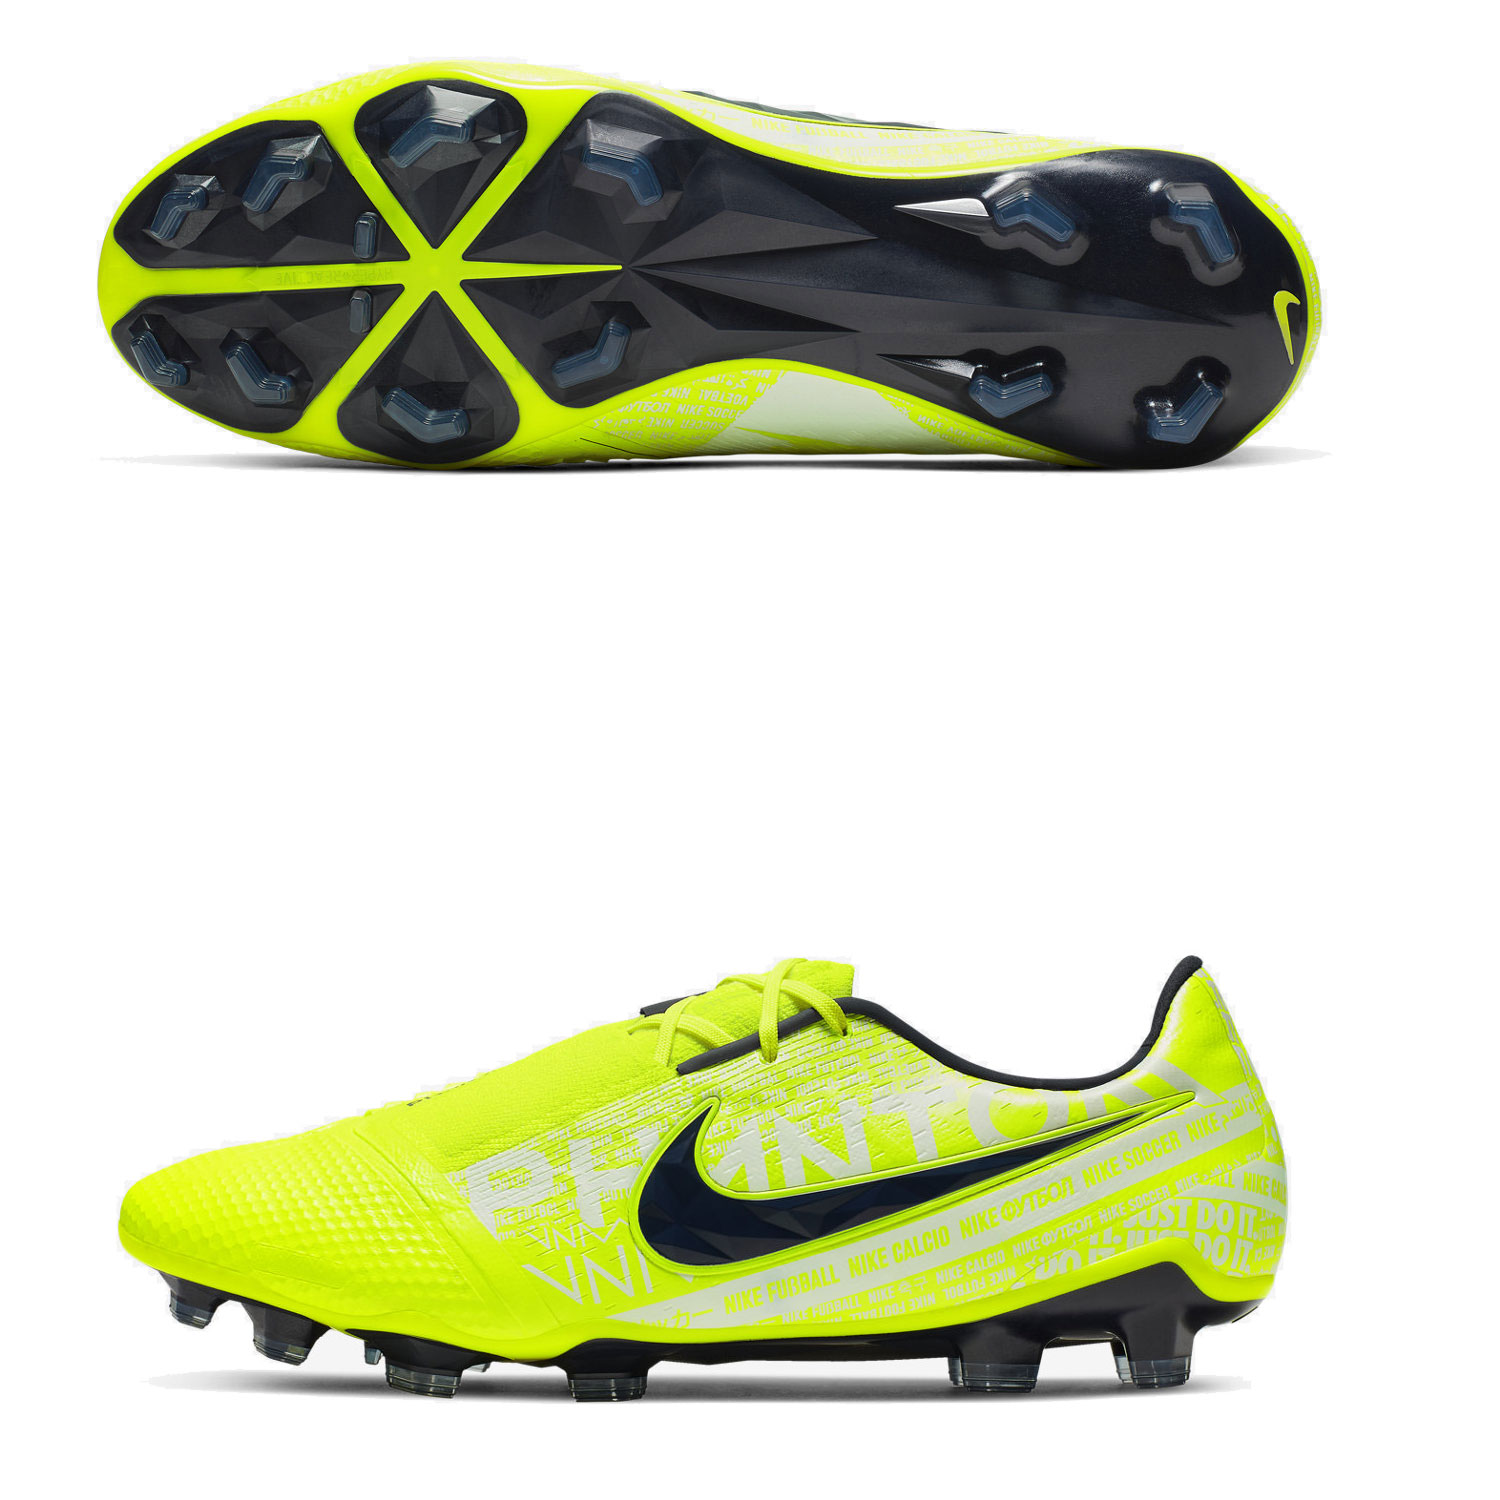 NIKE PHANTOM VENOM ELITE FG AO7540-717